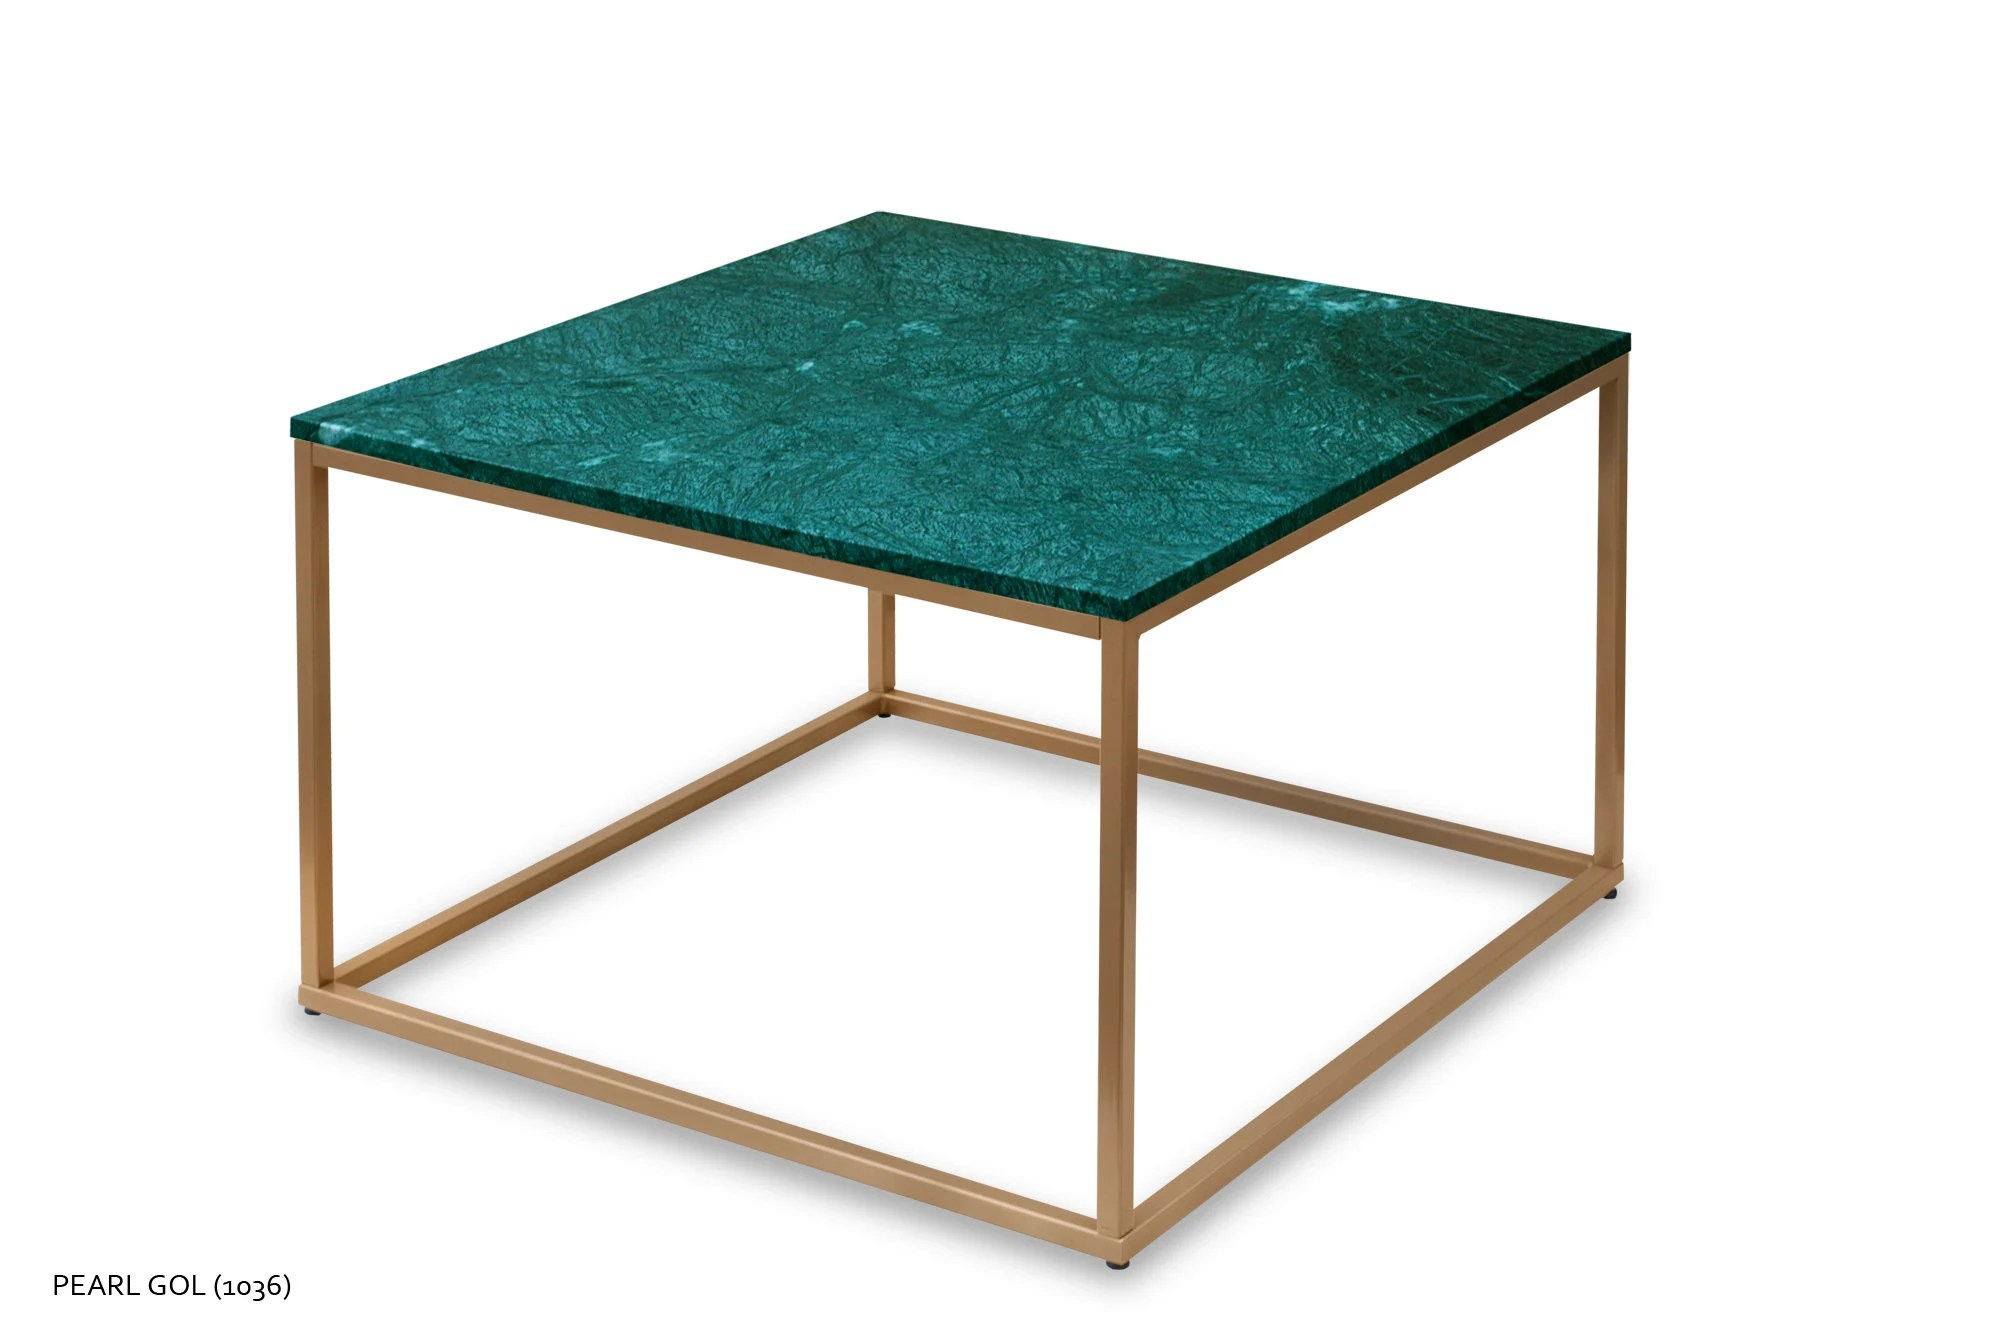 Couchtisch Fashion For Home Coffee Table Made To Order Square Green Marble Hand Made Marble Top Coffe Table For Living Room Fashion Home